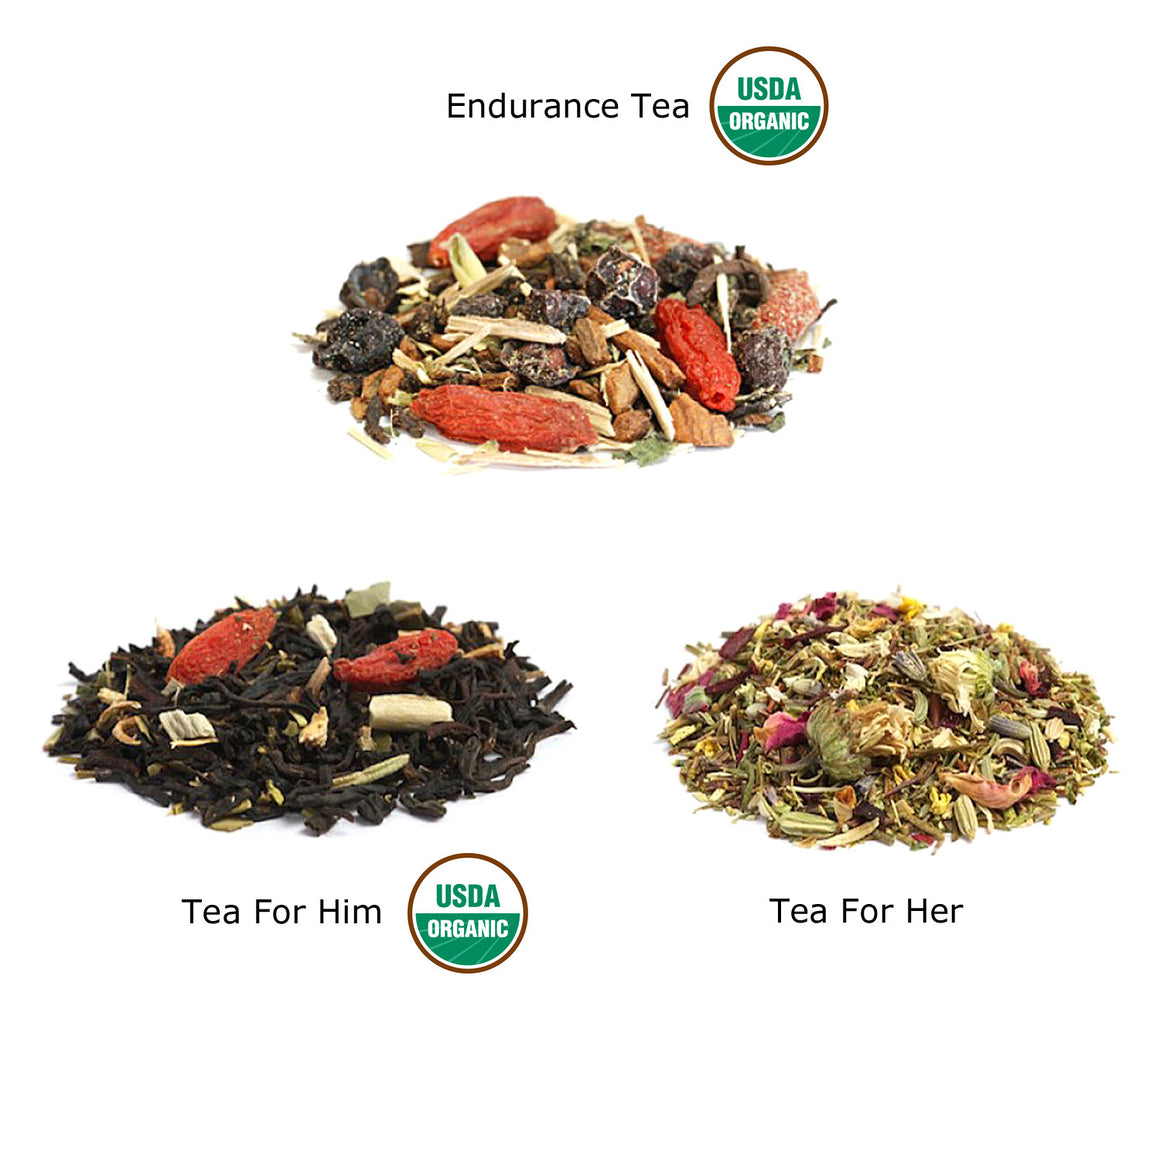 Him, Hers and Endurance Tea Combo Gift